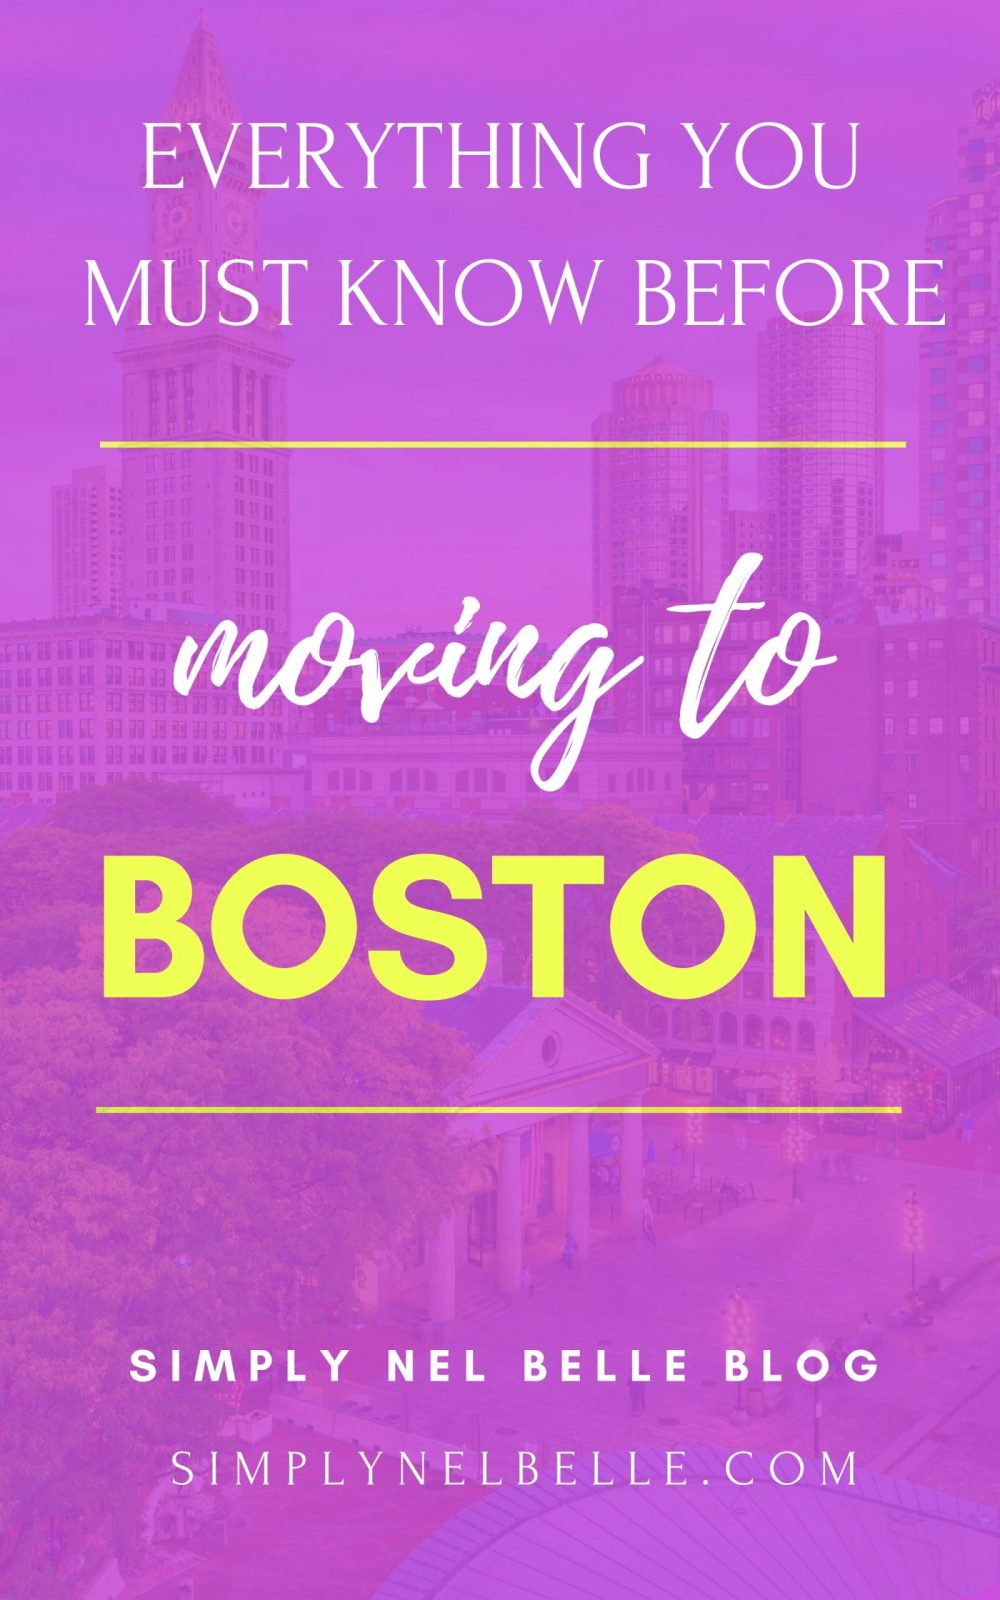 Everything you must know before moving to boston - simply nel belle blog - pinterest image